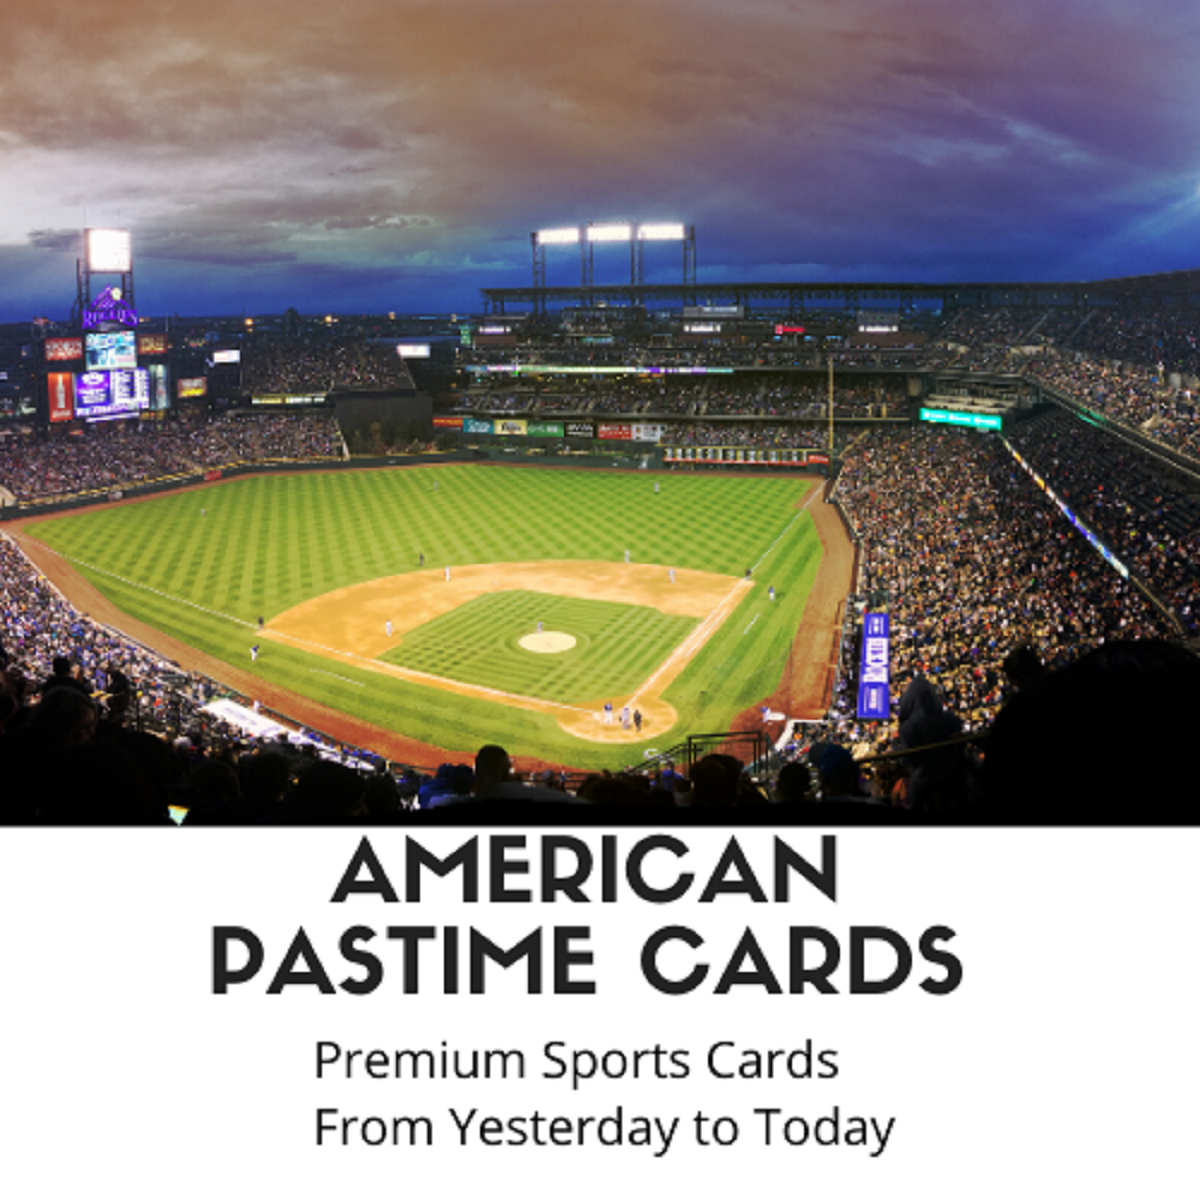 American Pastime Cards